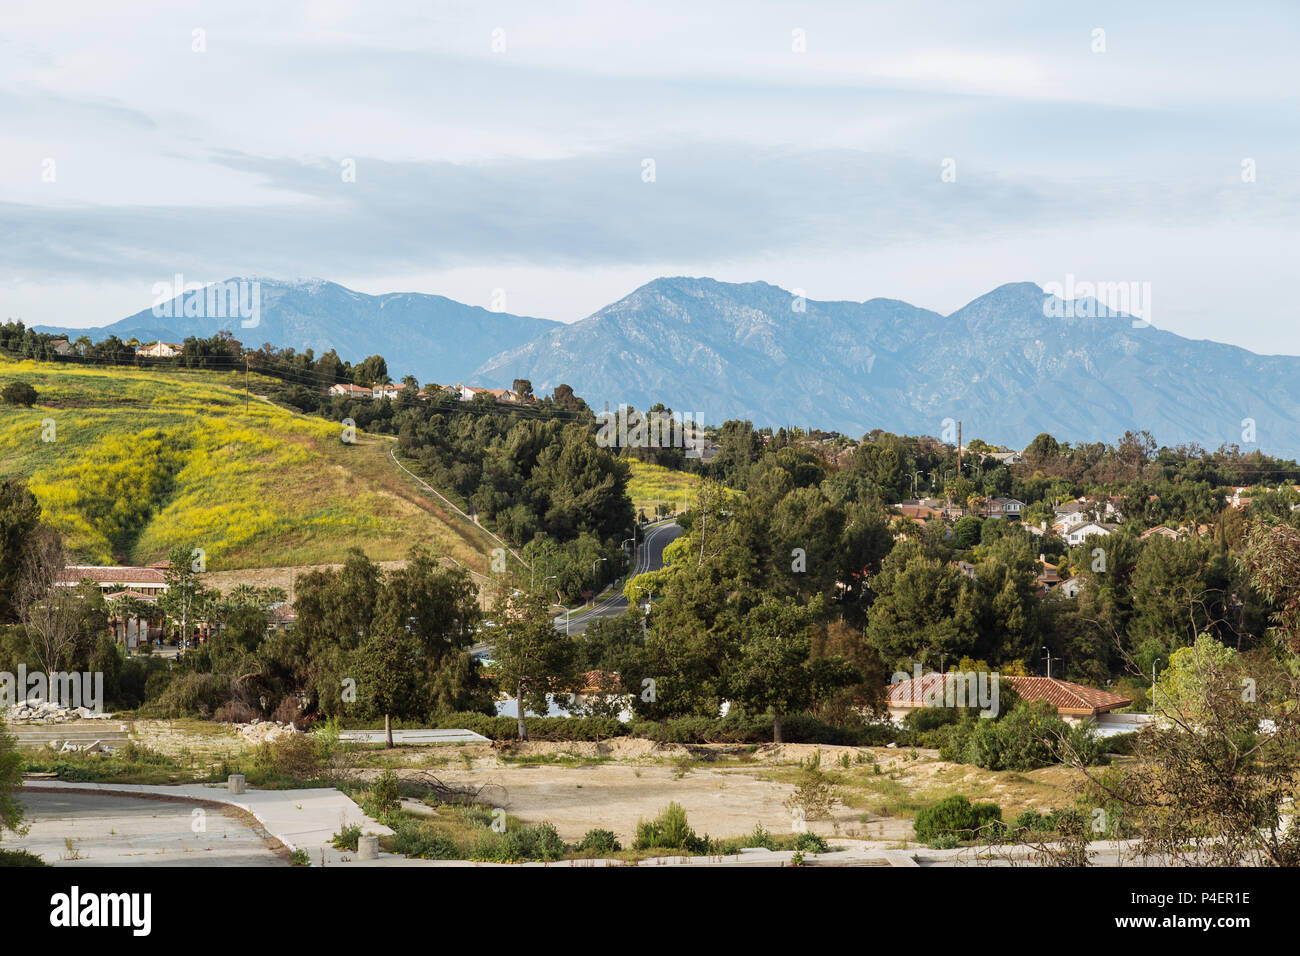 Chino hills stock photos chino hills stock images alamy cloudy day at chino hills state park los angeles ca united states stock freerunsca Image collections